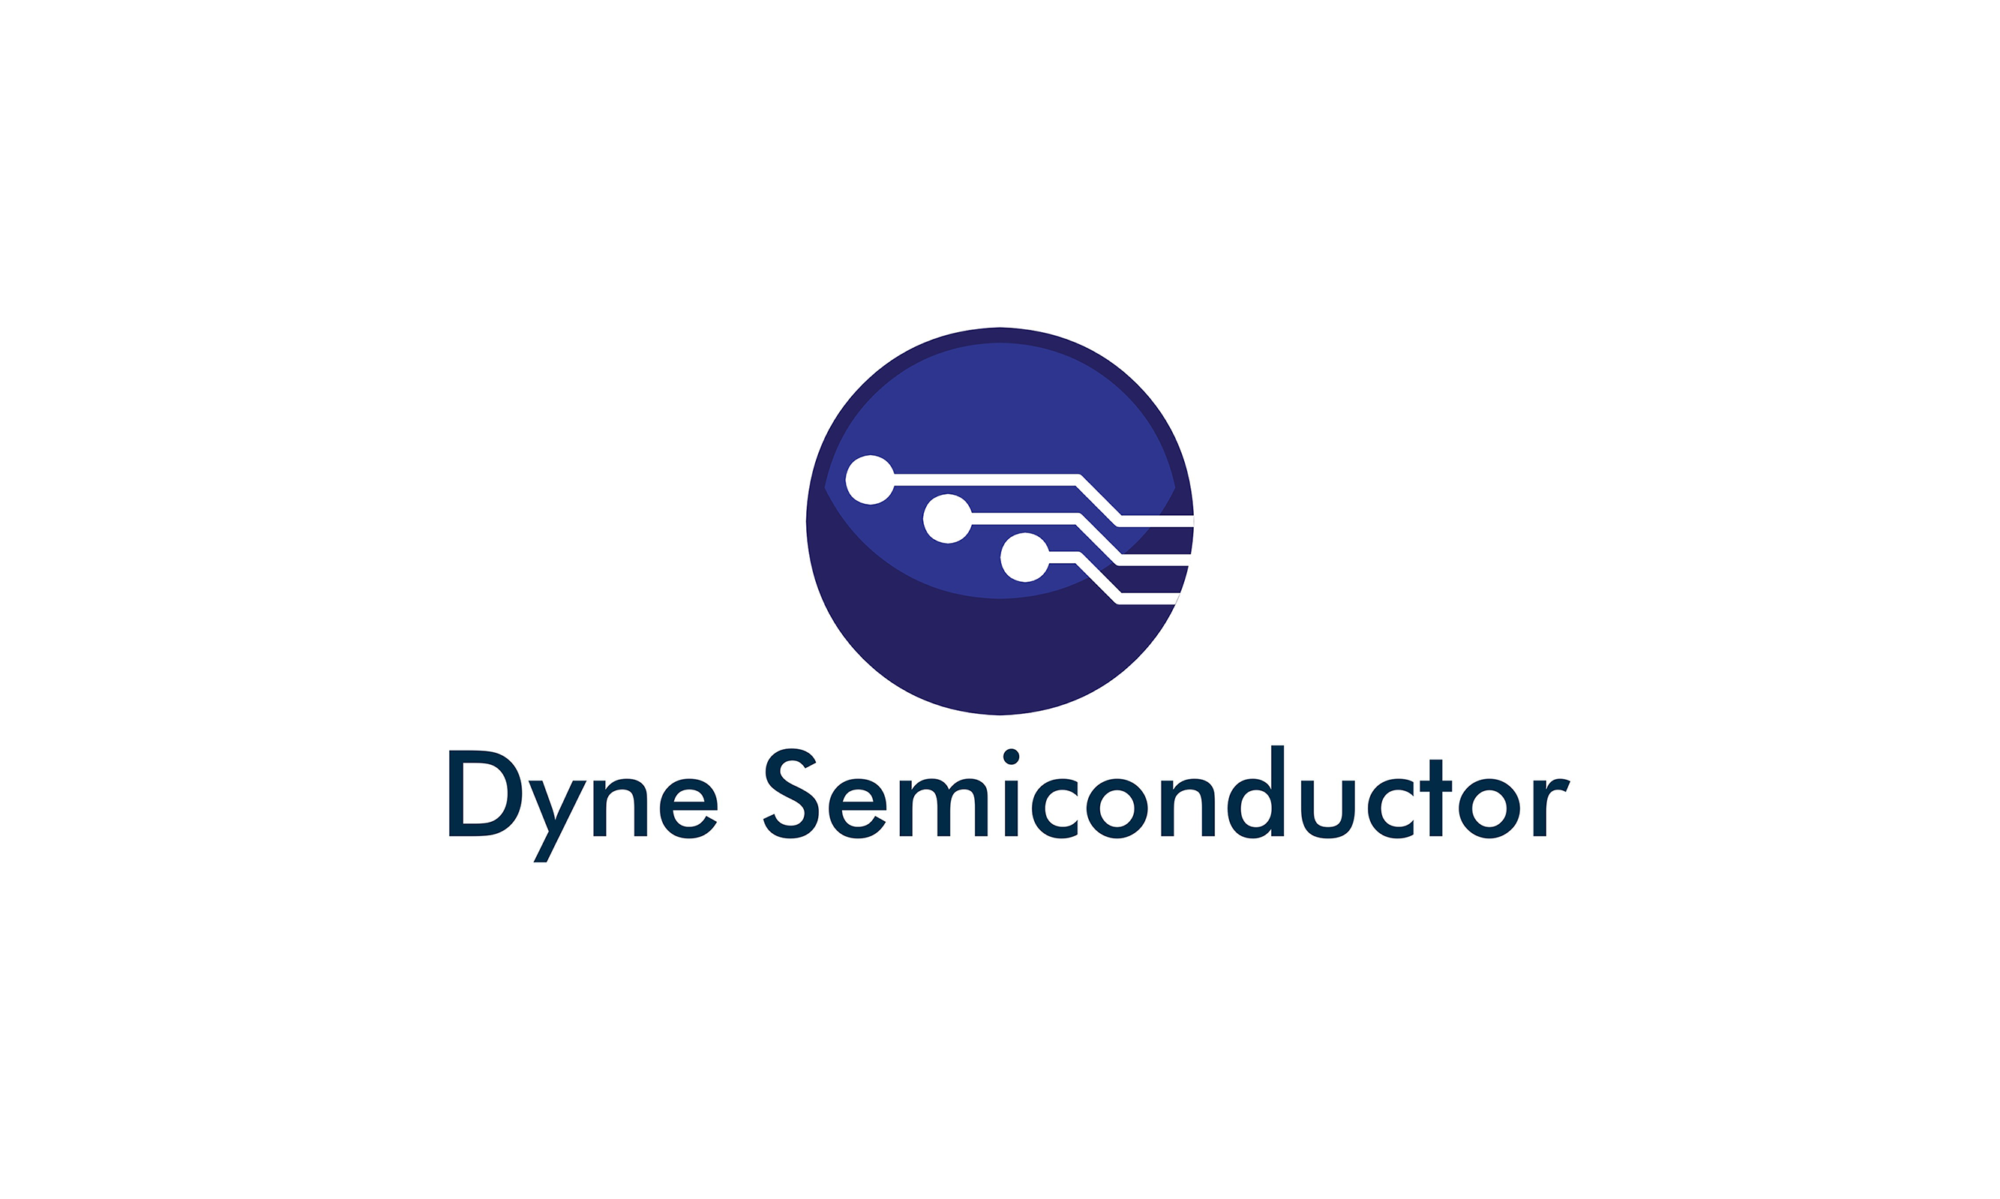 Dyne Semiconductor